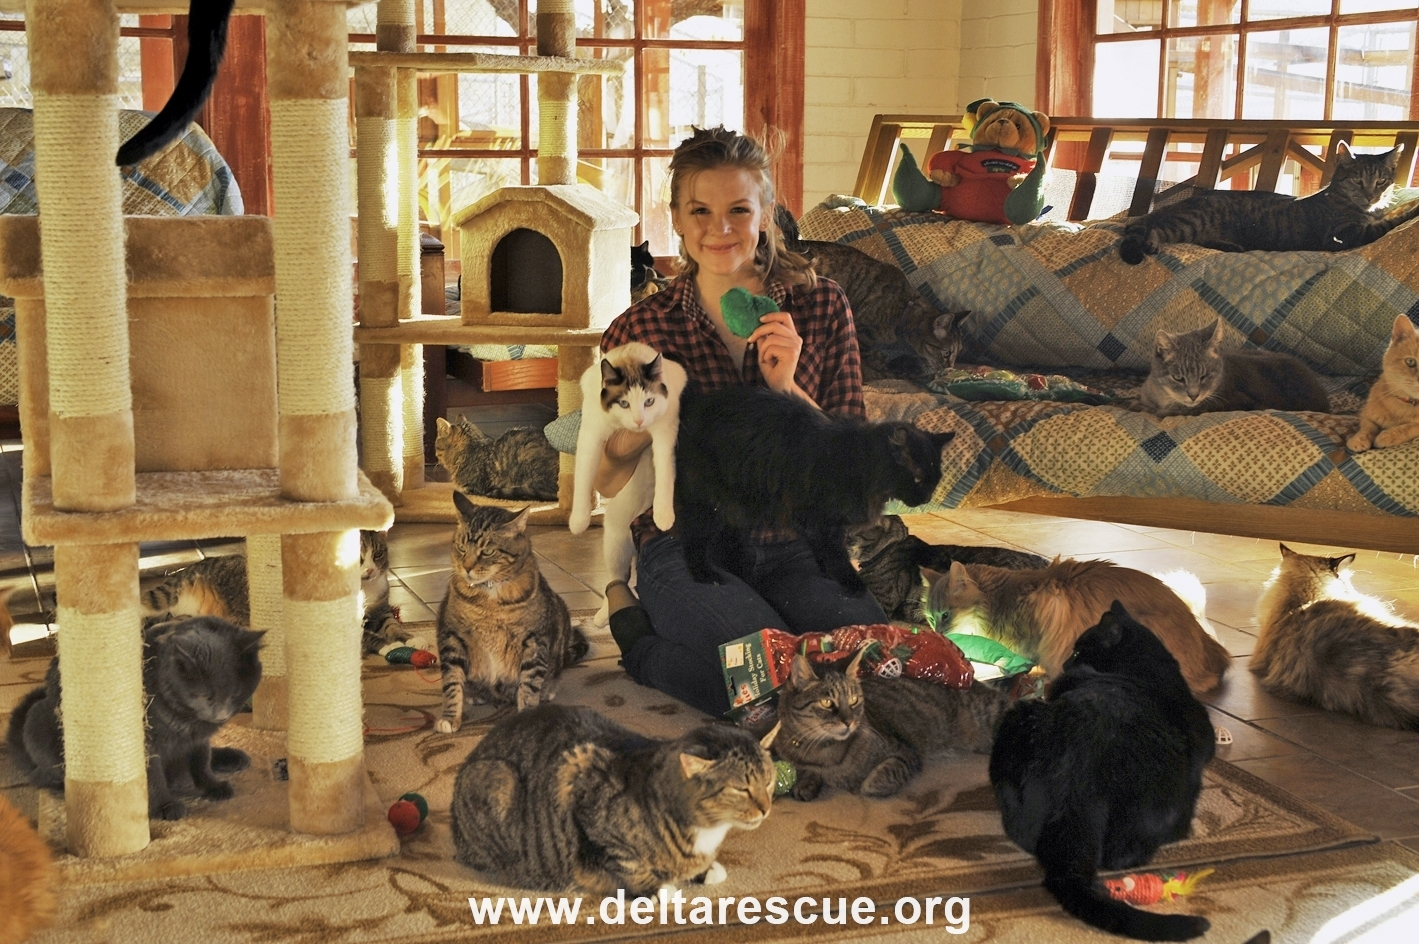 A Delta Rescue Cattery